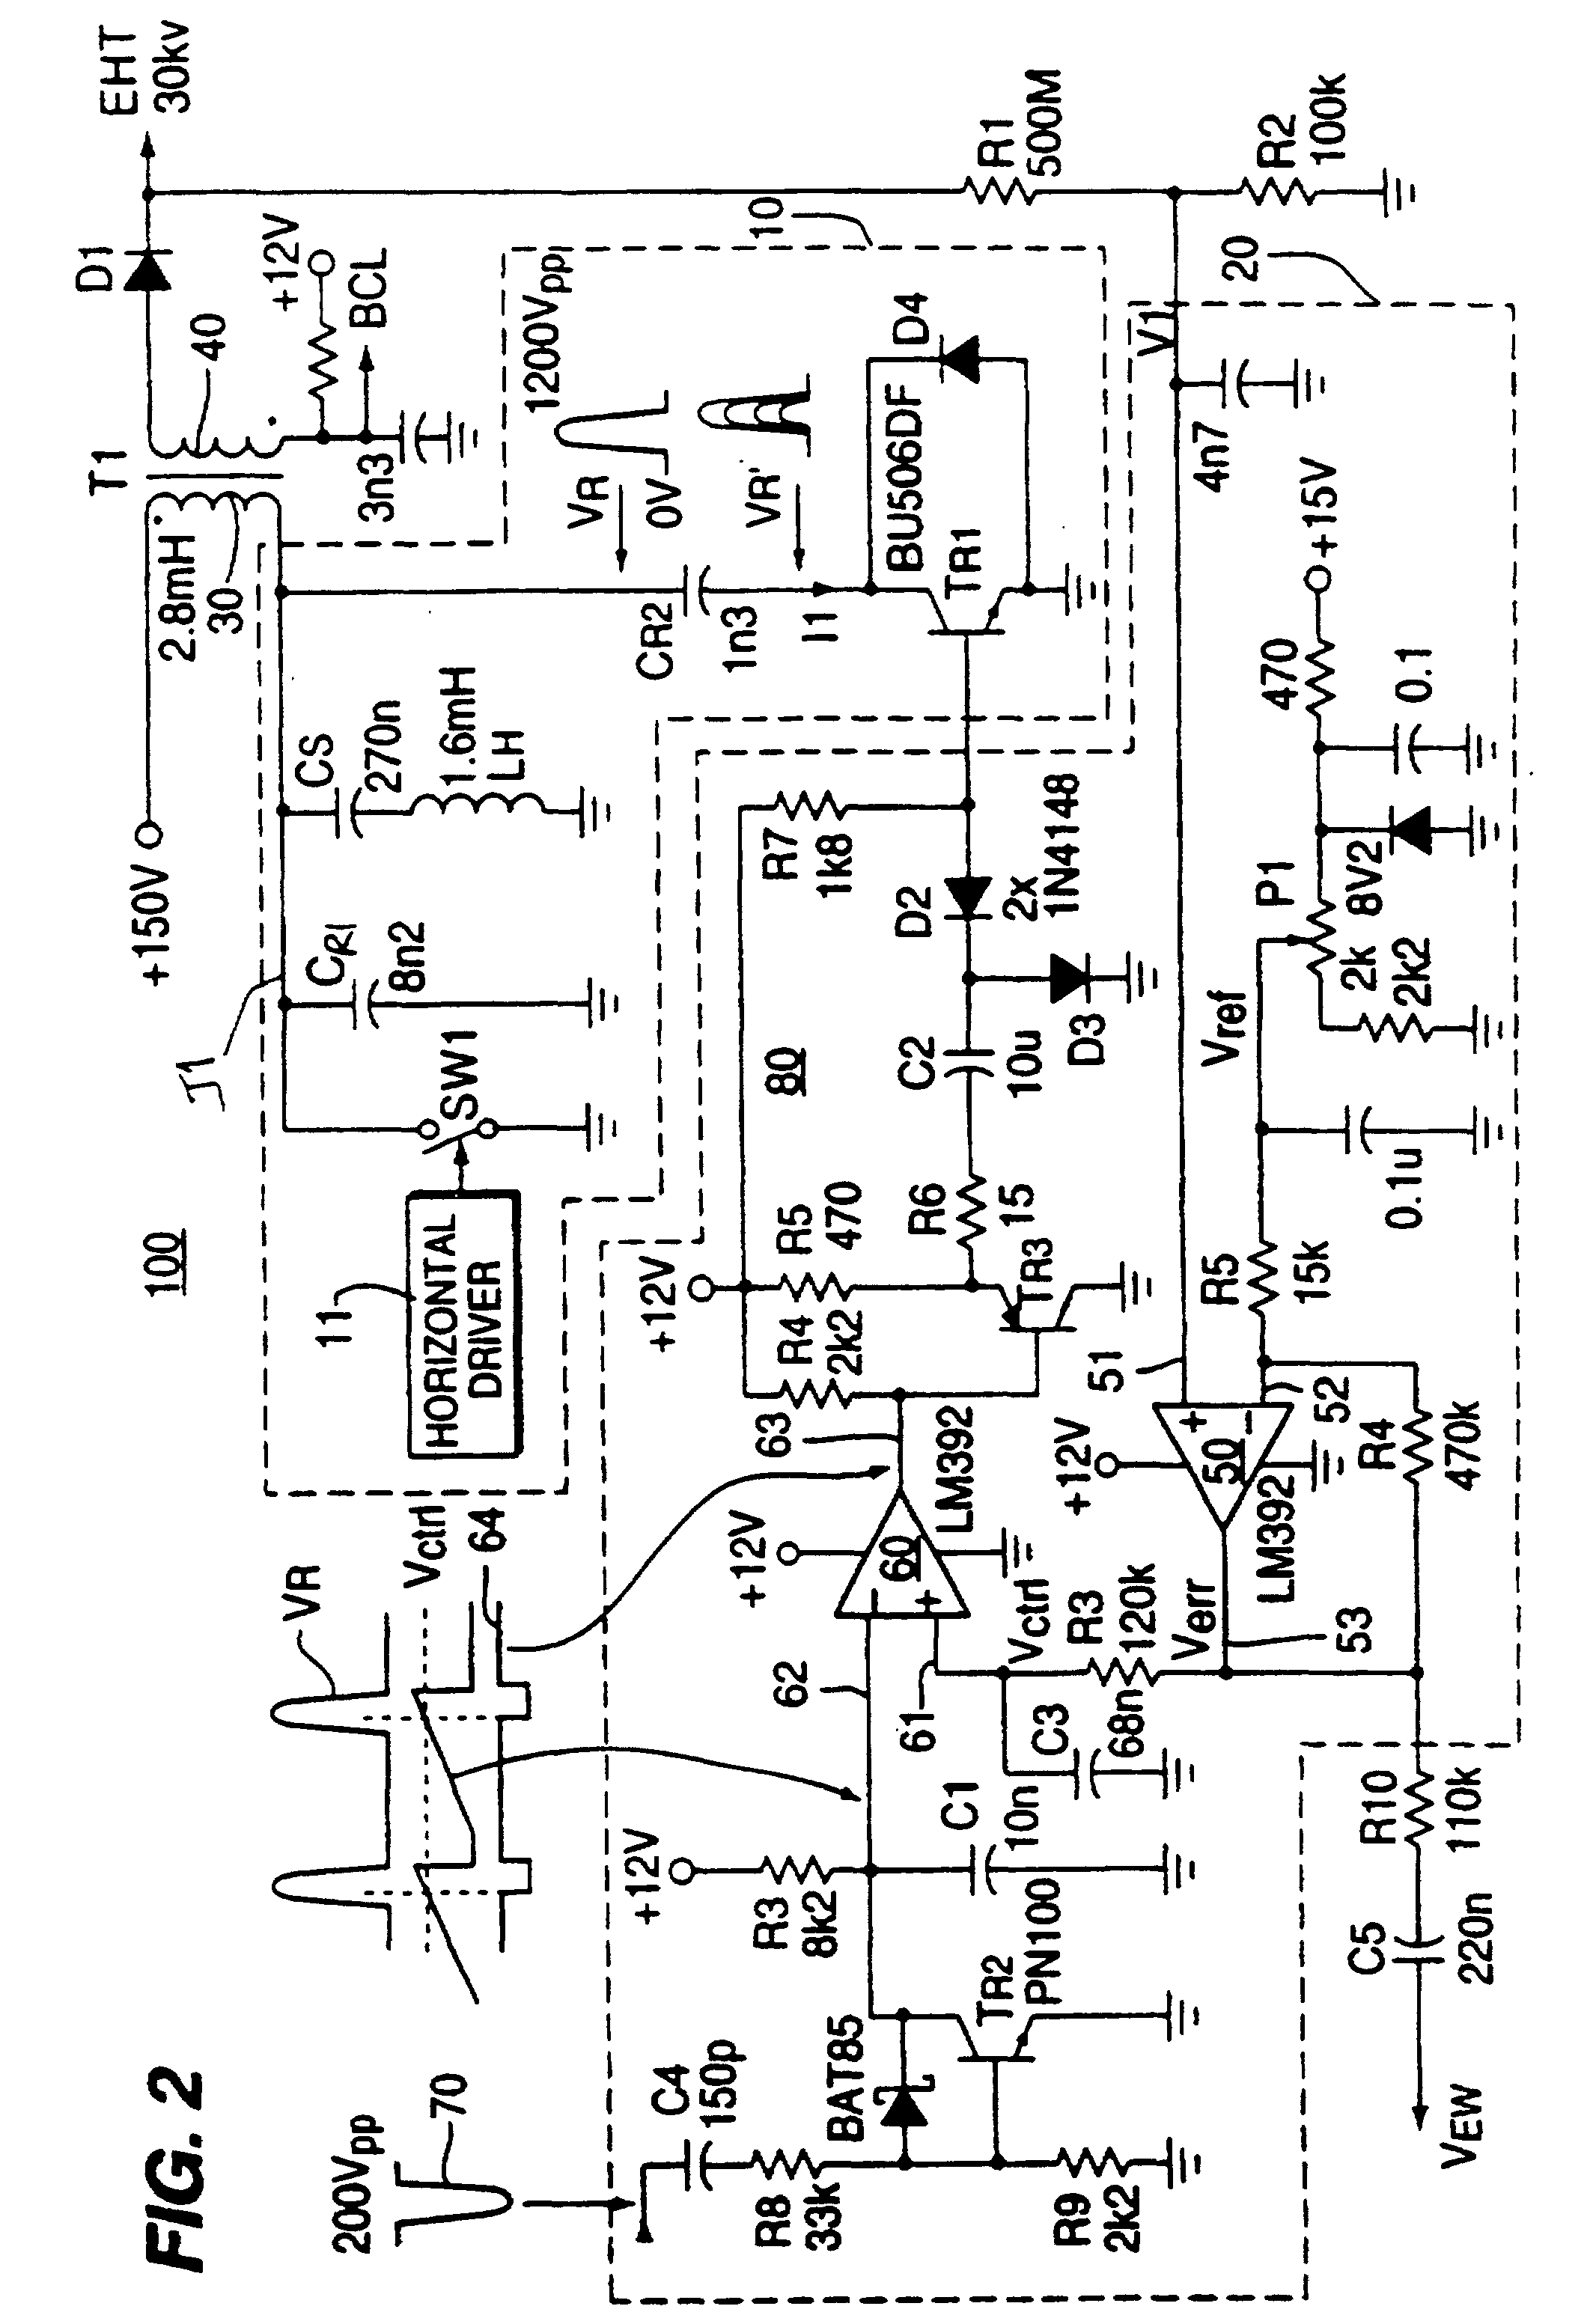 Monolithically integrated telephone circuit for driving wide-band telephone